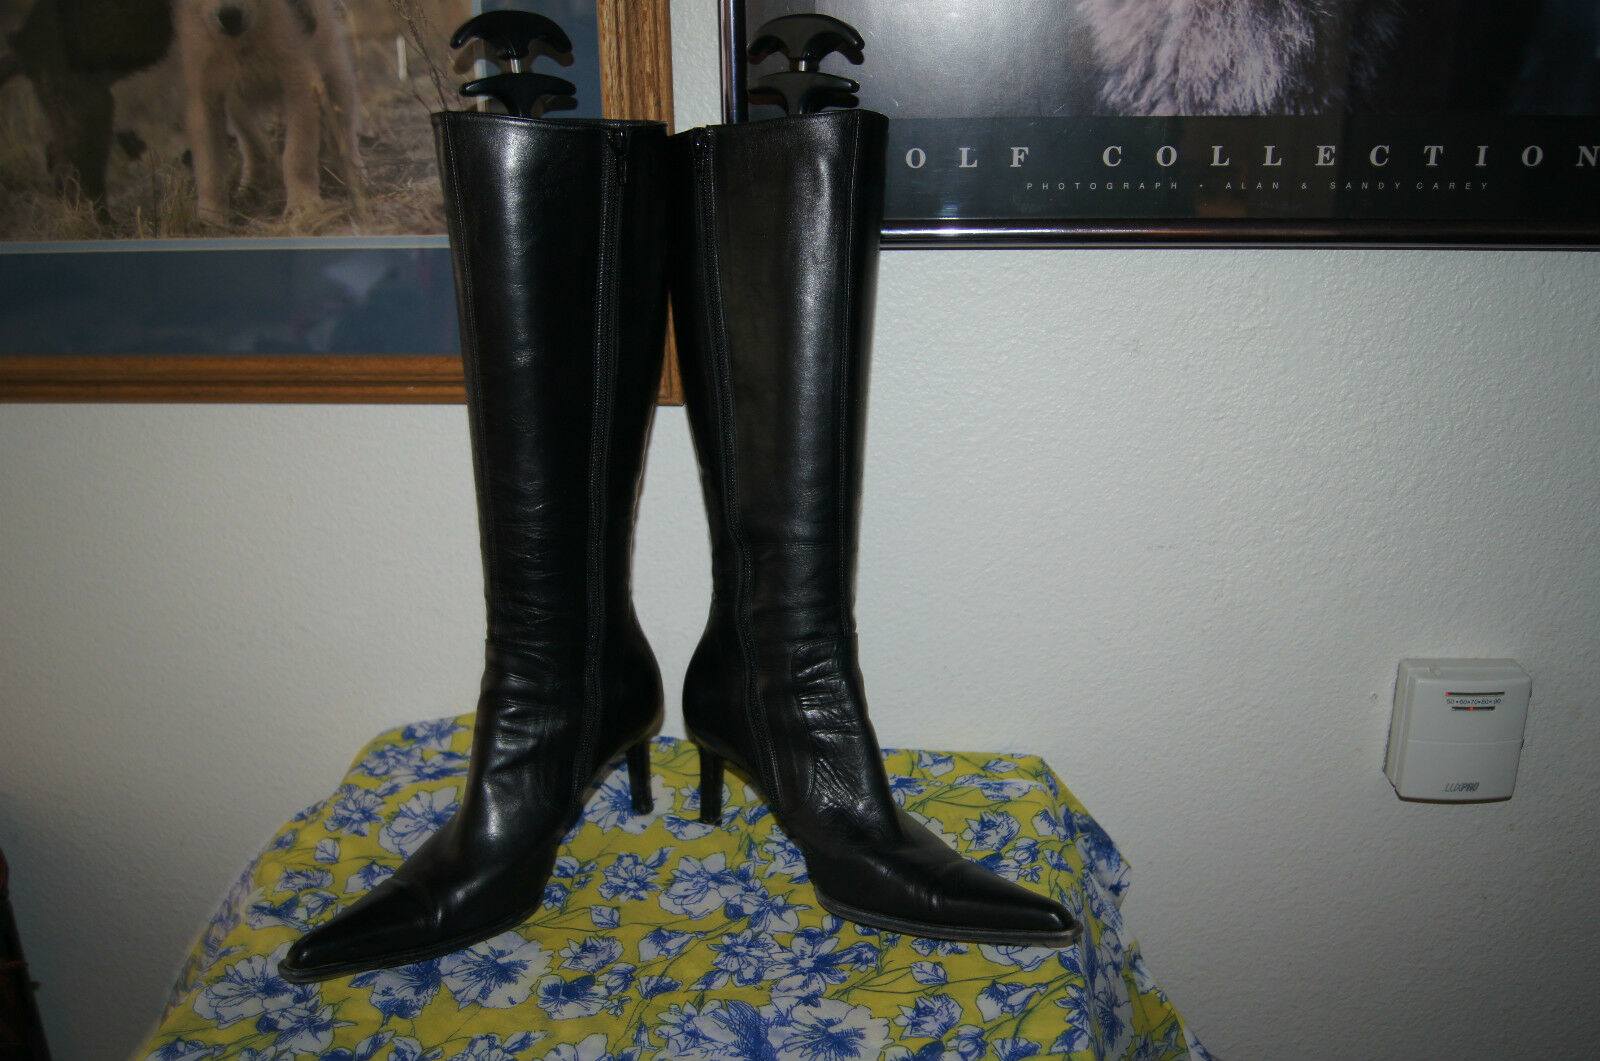 OMARI BOOTS 7 TALL Leather BootS BOOTS 7 HIGH HEEL ITALIAN BOOTS BootS 7 /37.5 HIGH FASHION 0db621